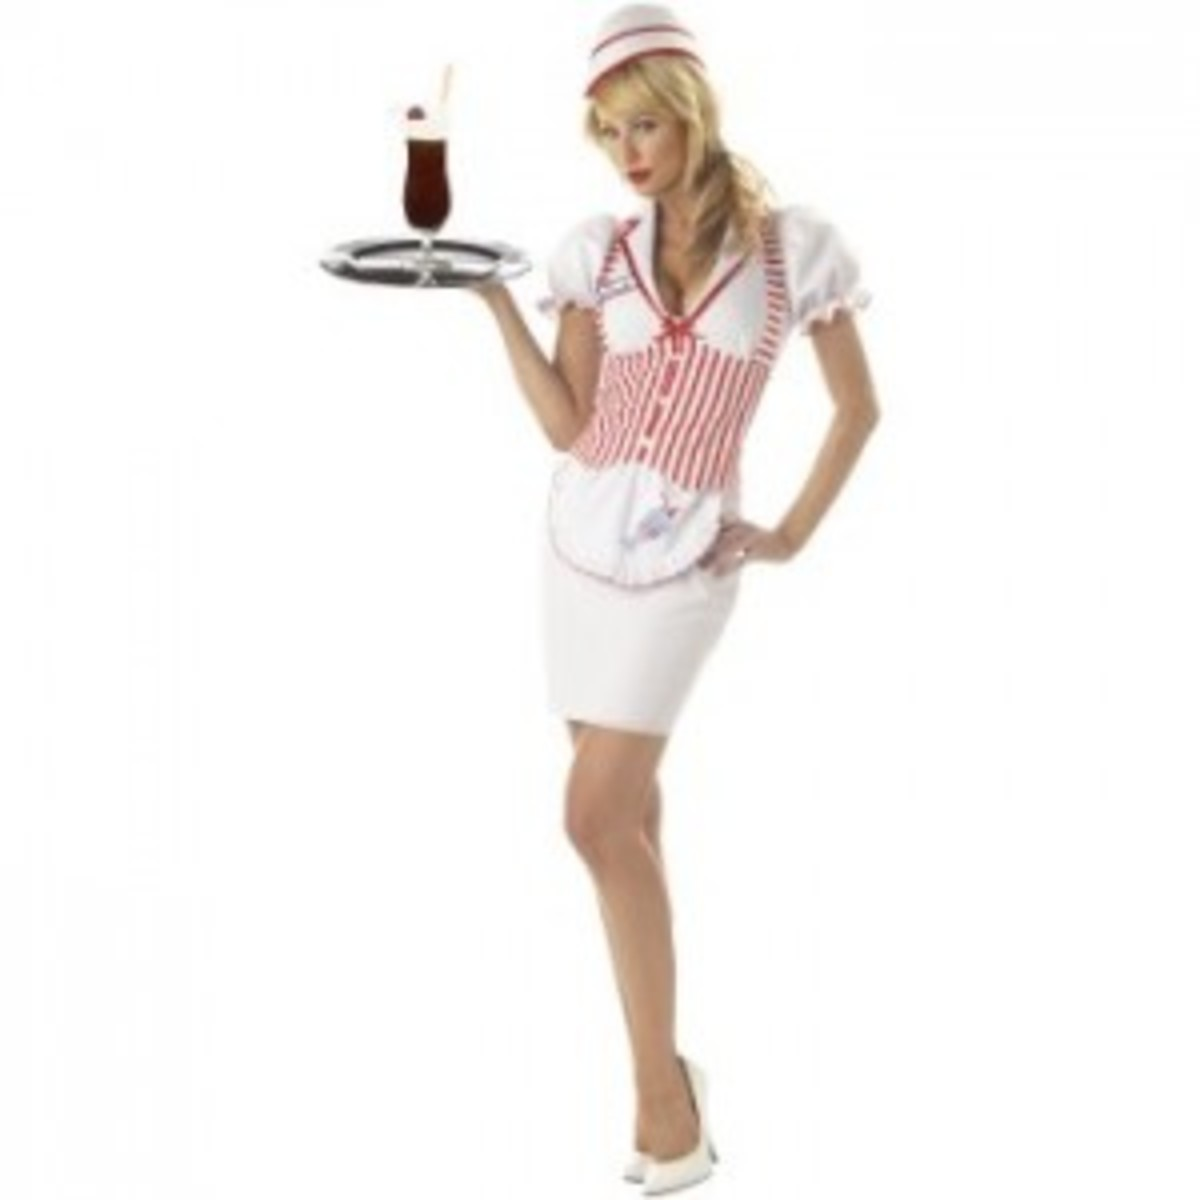 ice cream costume in pink and white holding a tray with a float